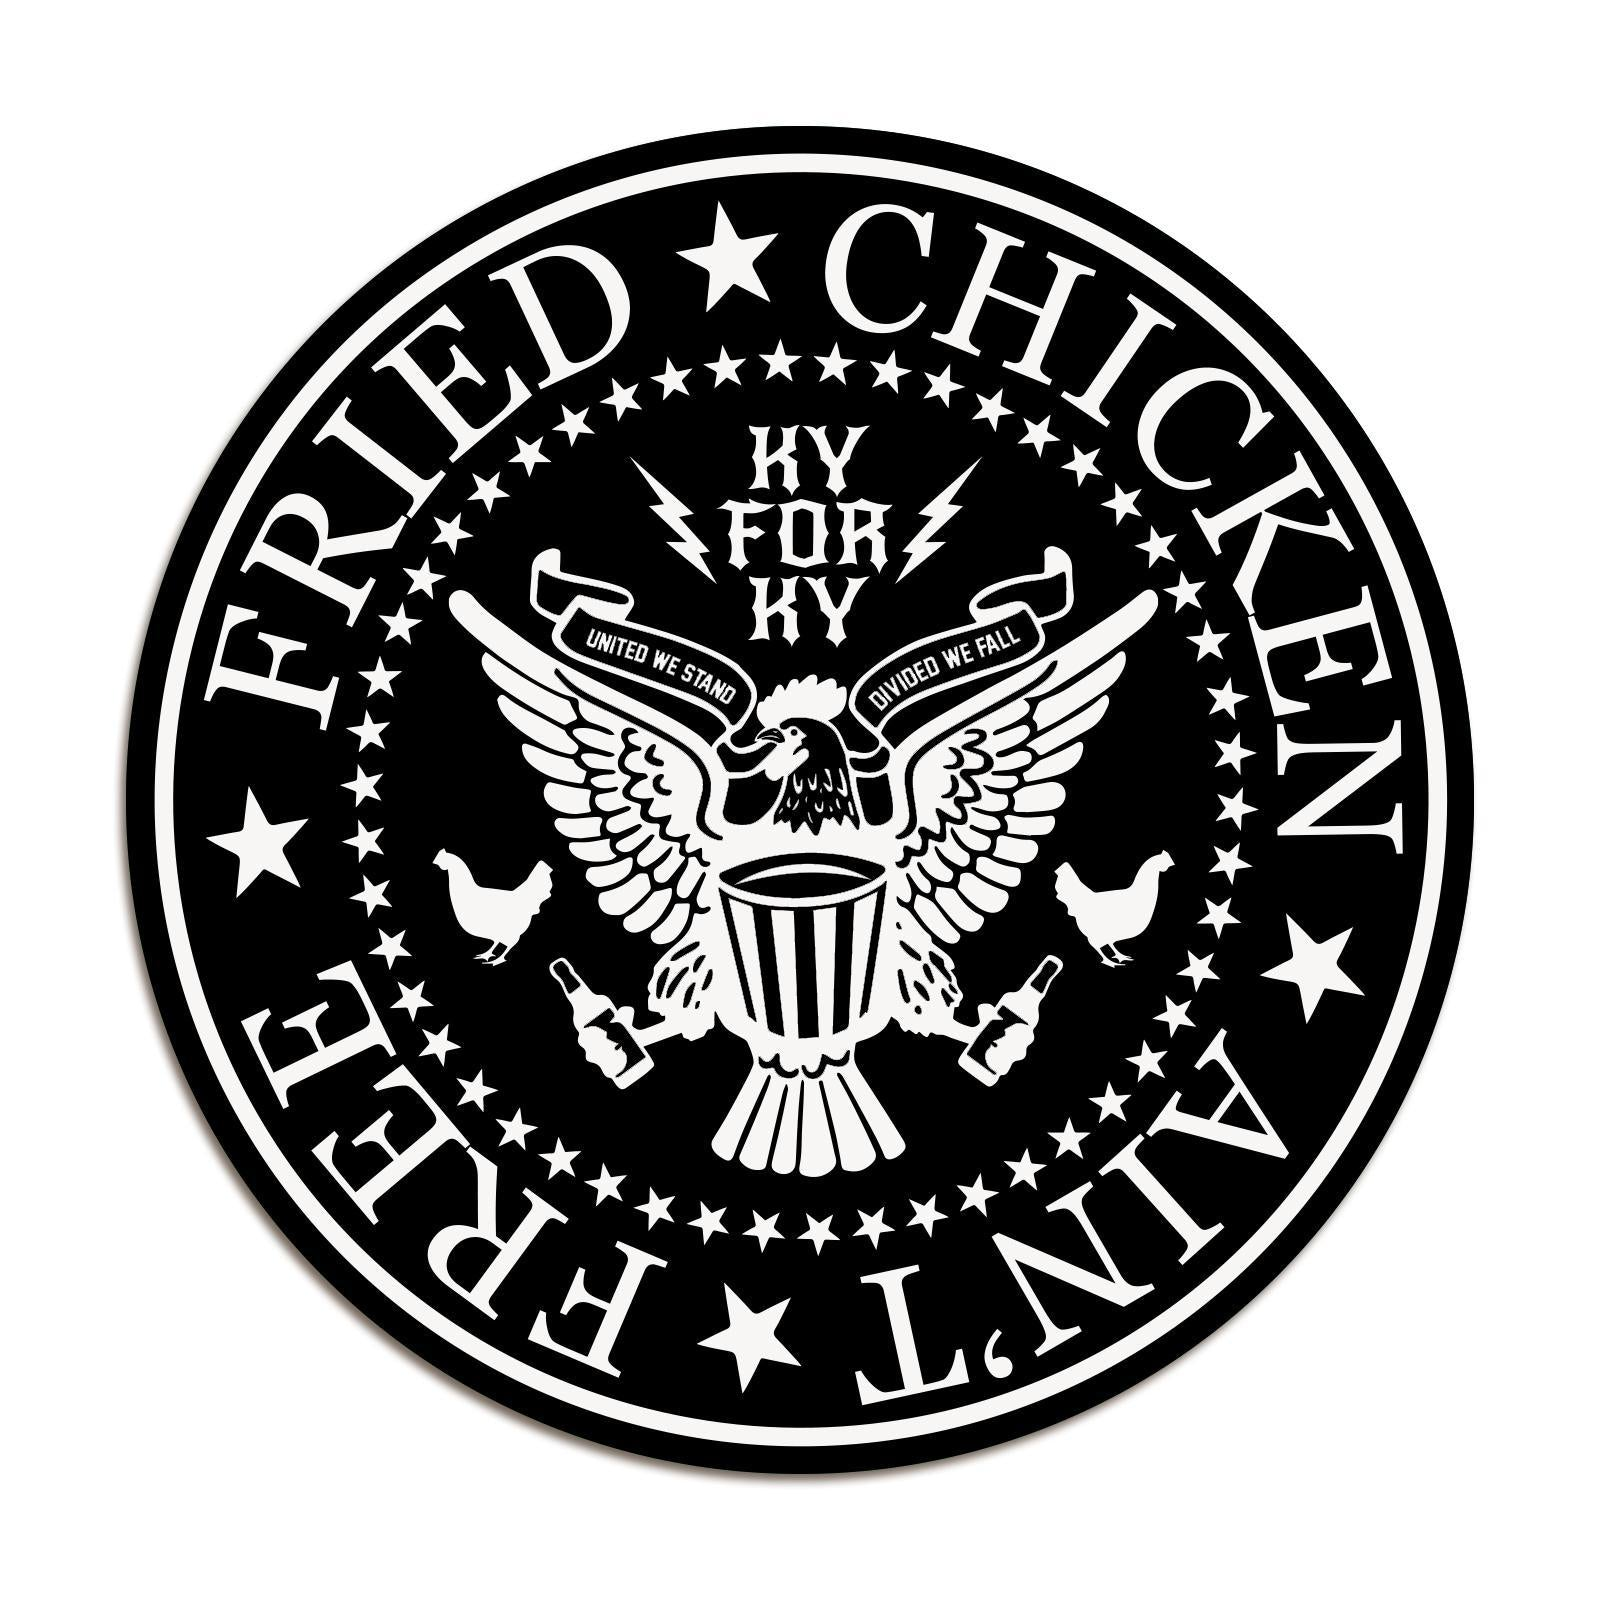 Fried Chicken Ain't Free Sticker-Stickers-KY for KY Store